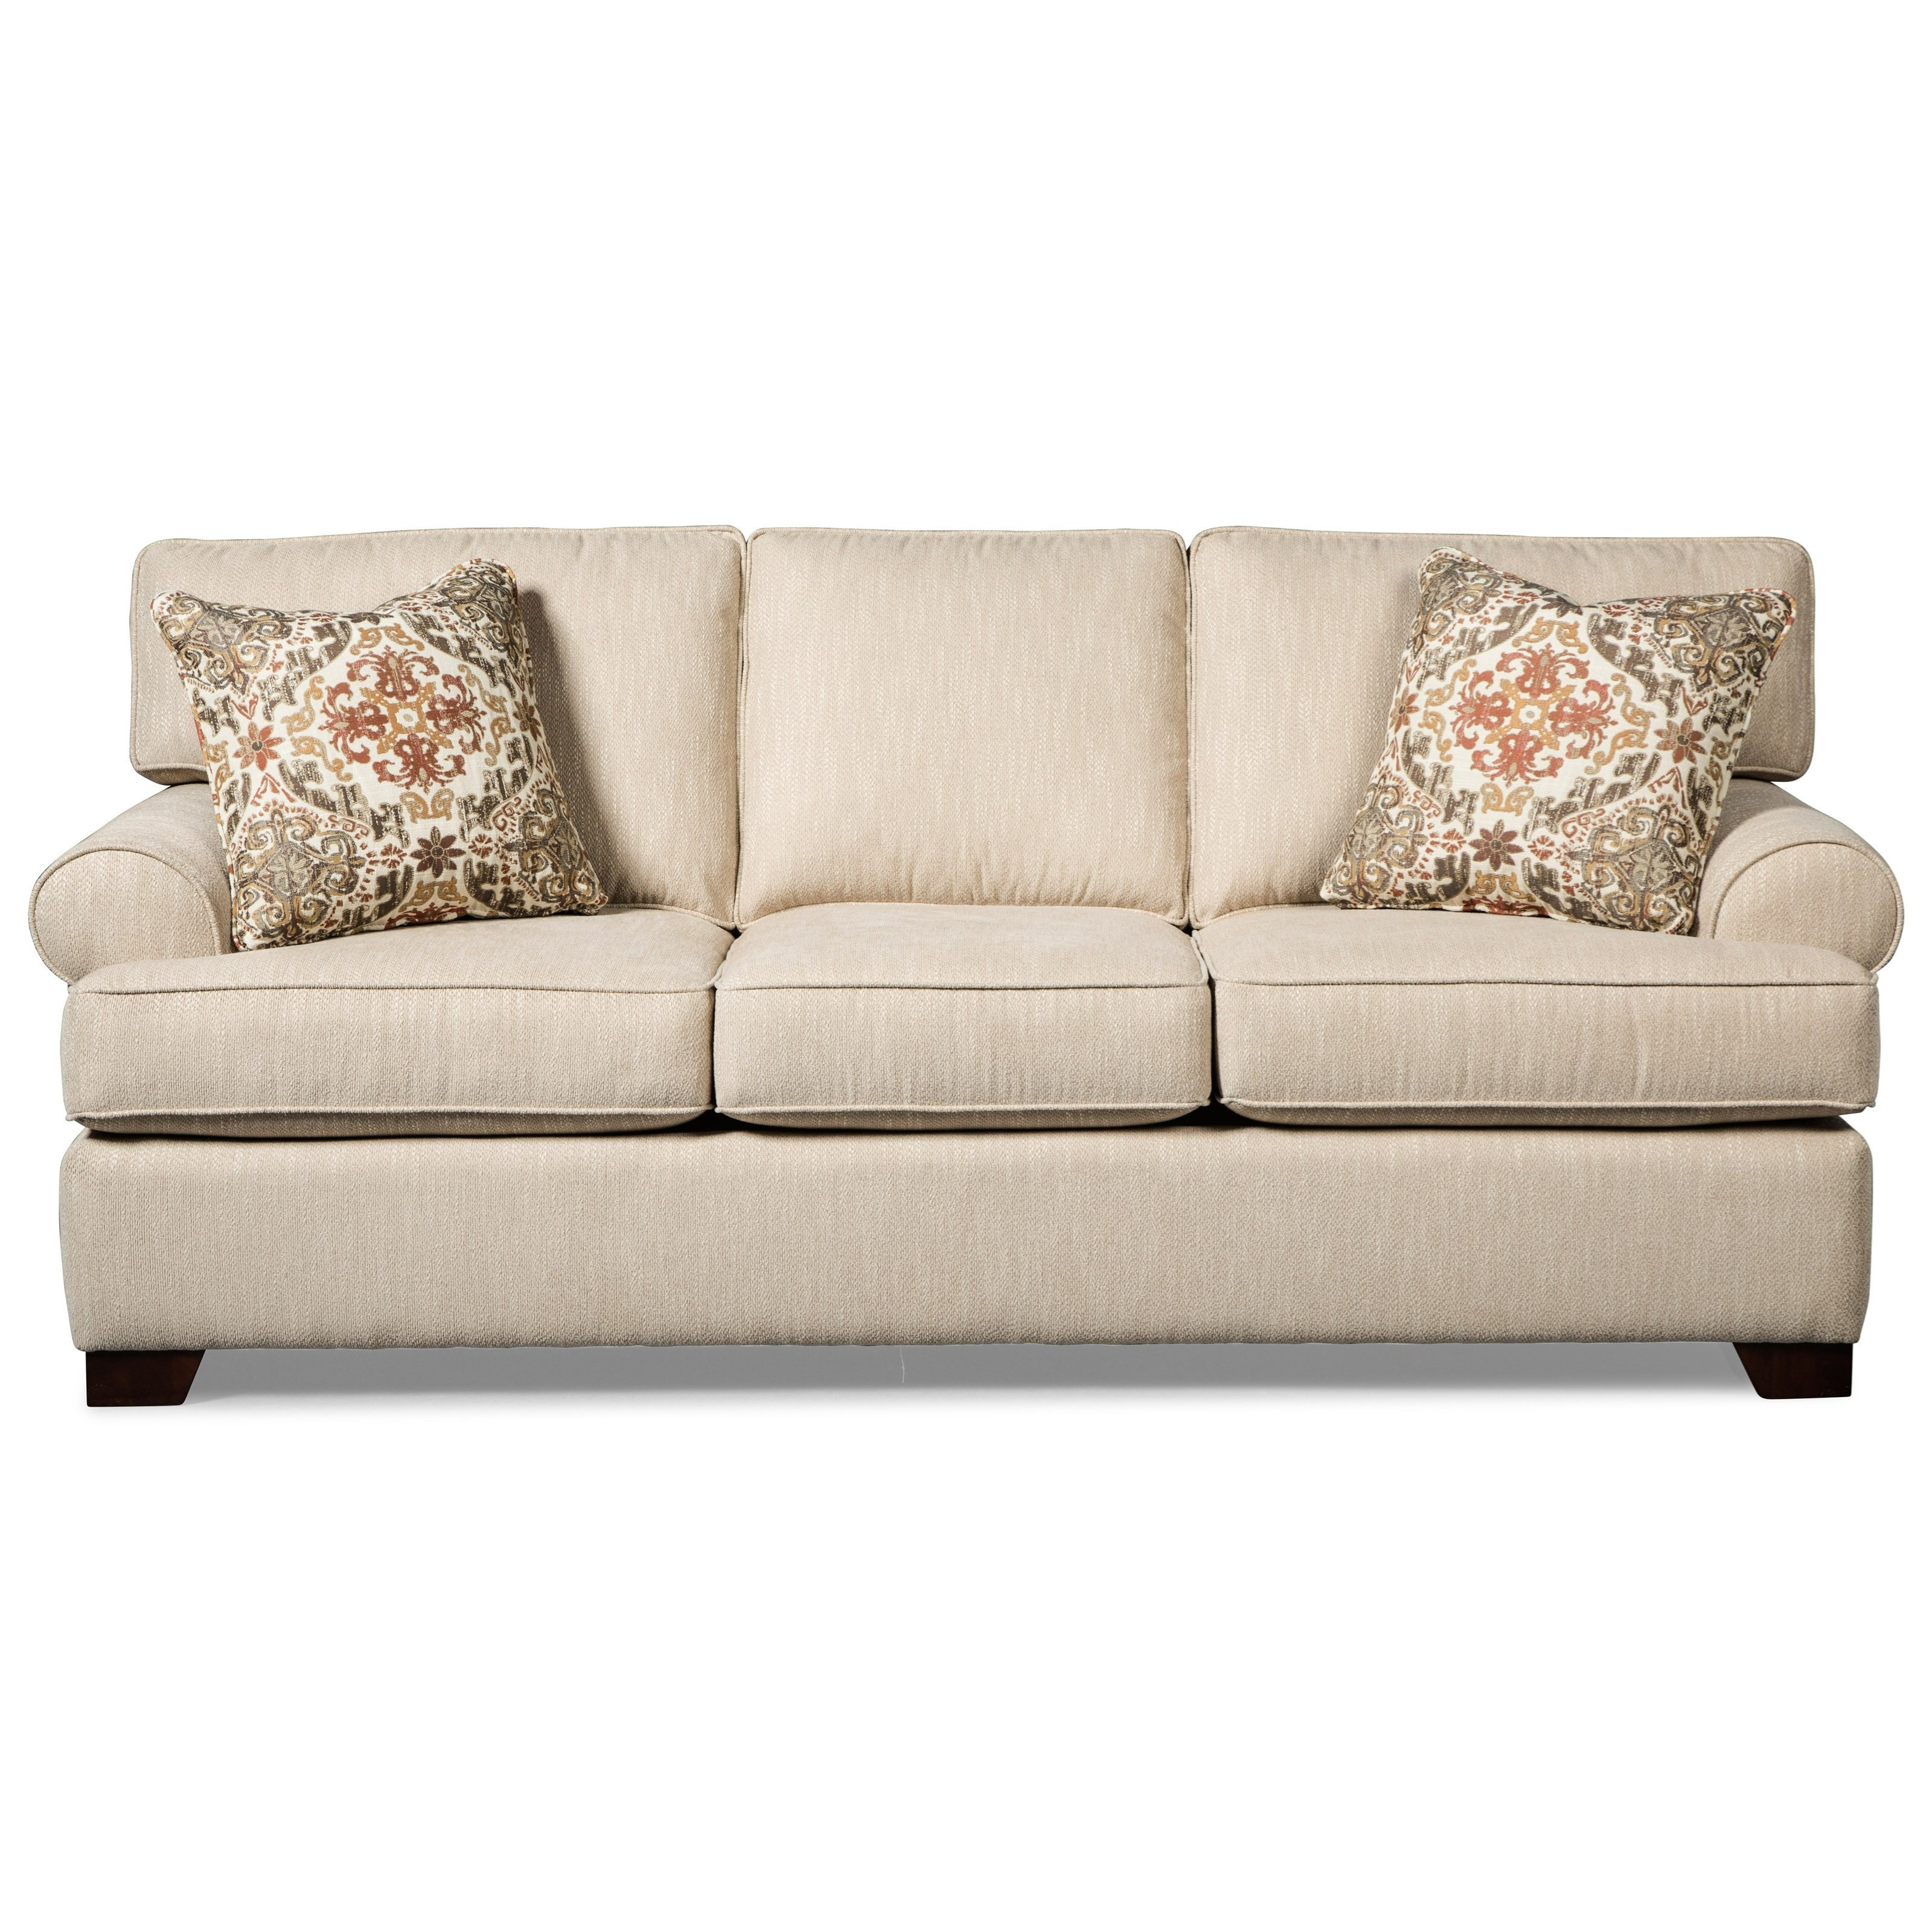 Best ideas about Queen Sleeper Sofa Mattress . Save or Pin Casual Queen Sleeper Sofa with Rolled Arms and Memory Foam Now.